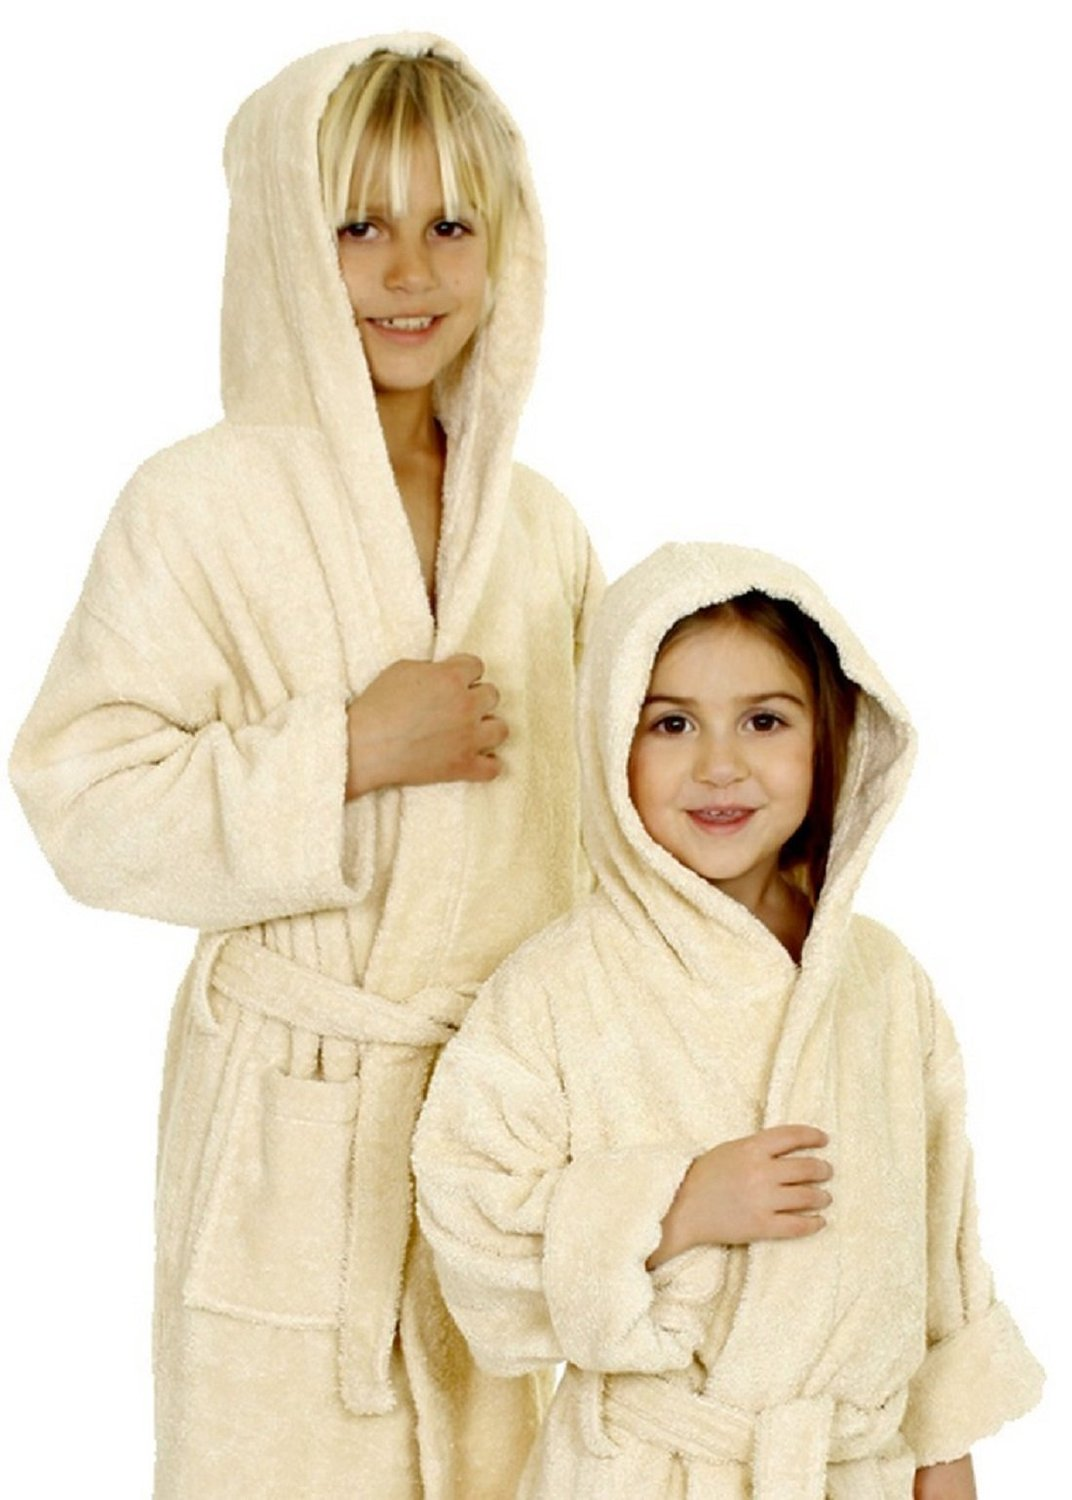 Kids Terry Cloth Robe 100% Cotton Kid s Hooded Bathrobe for Girl and Boy 30dc5f934